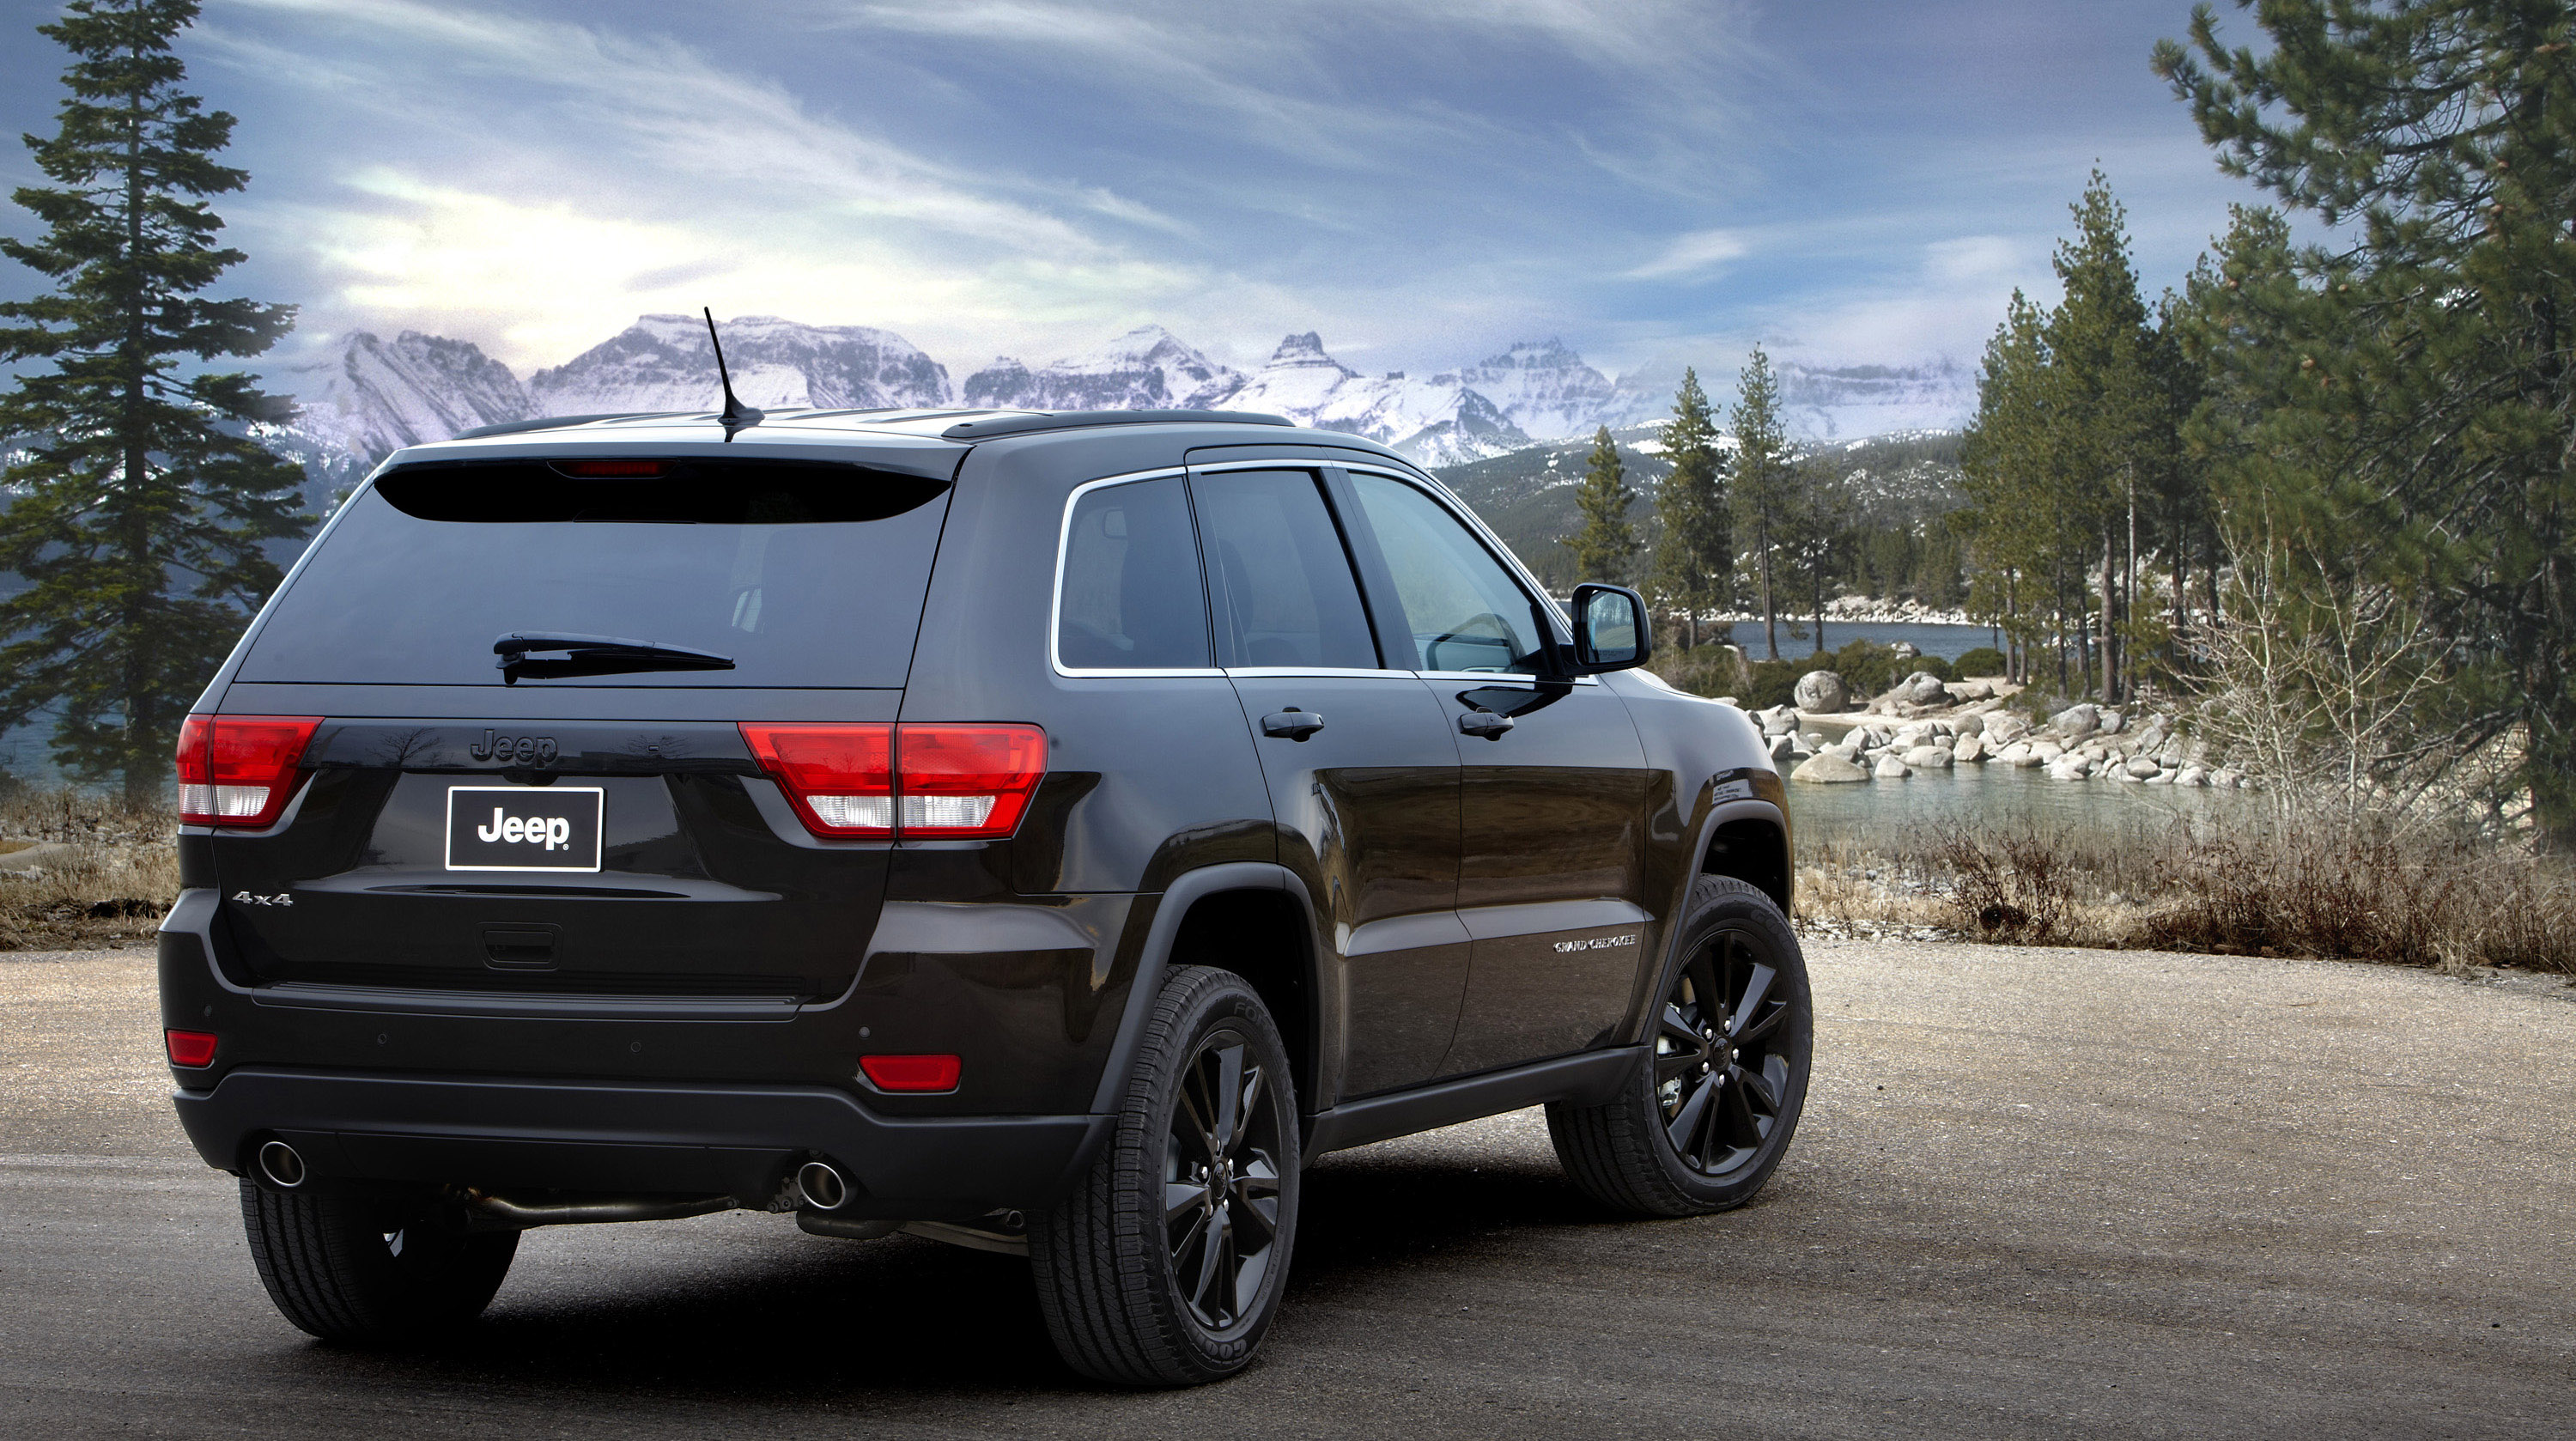 2012 jeep grand cherokee altitude picture 67193. Black Bedroom Furniture Sets. Home Design Ideas